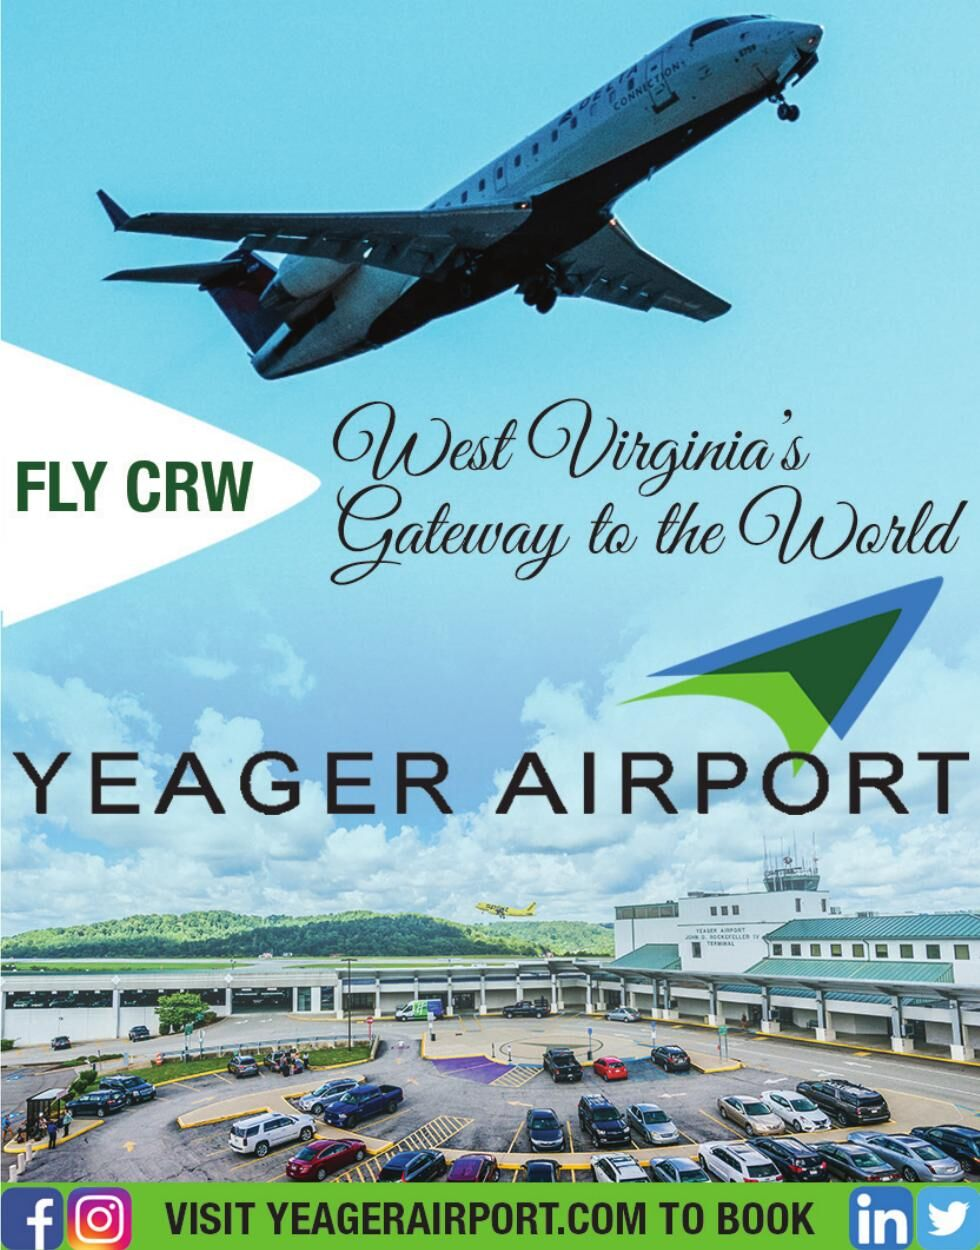 YEAGER AIRPORT